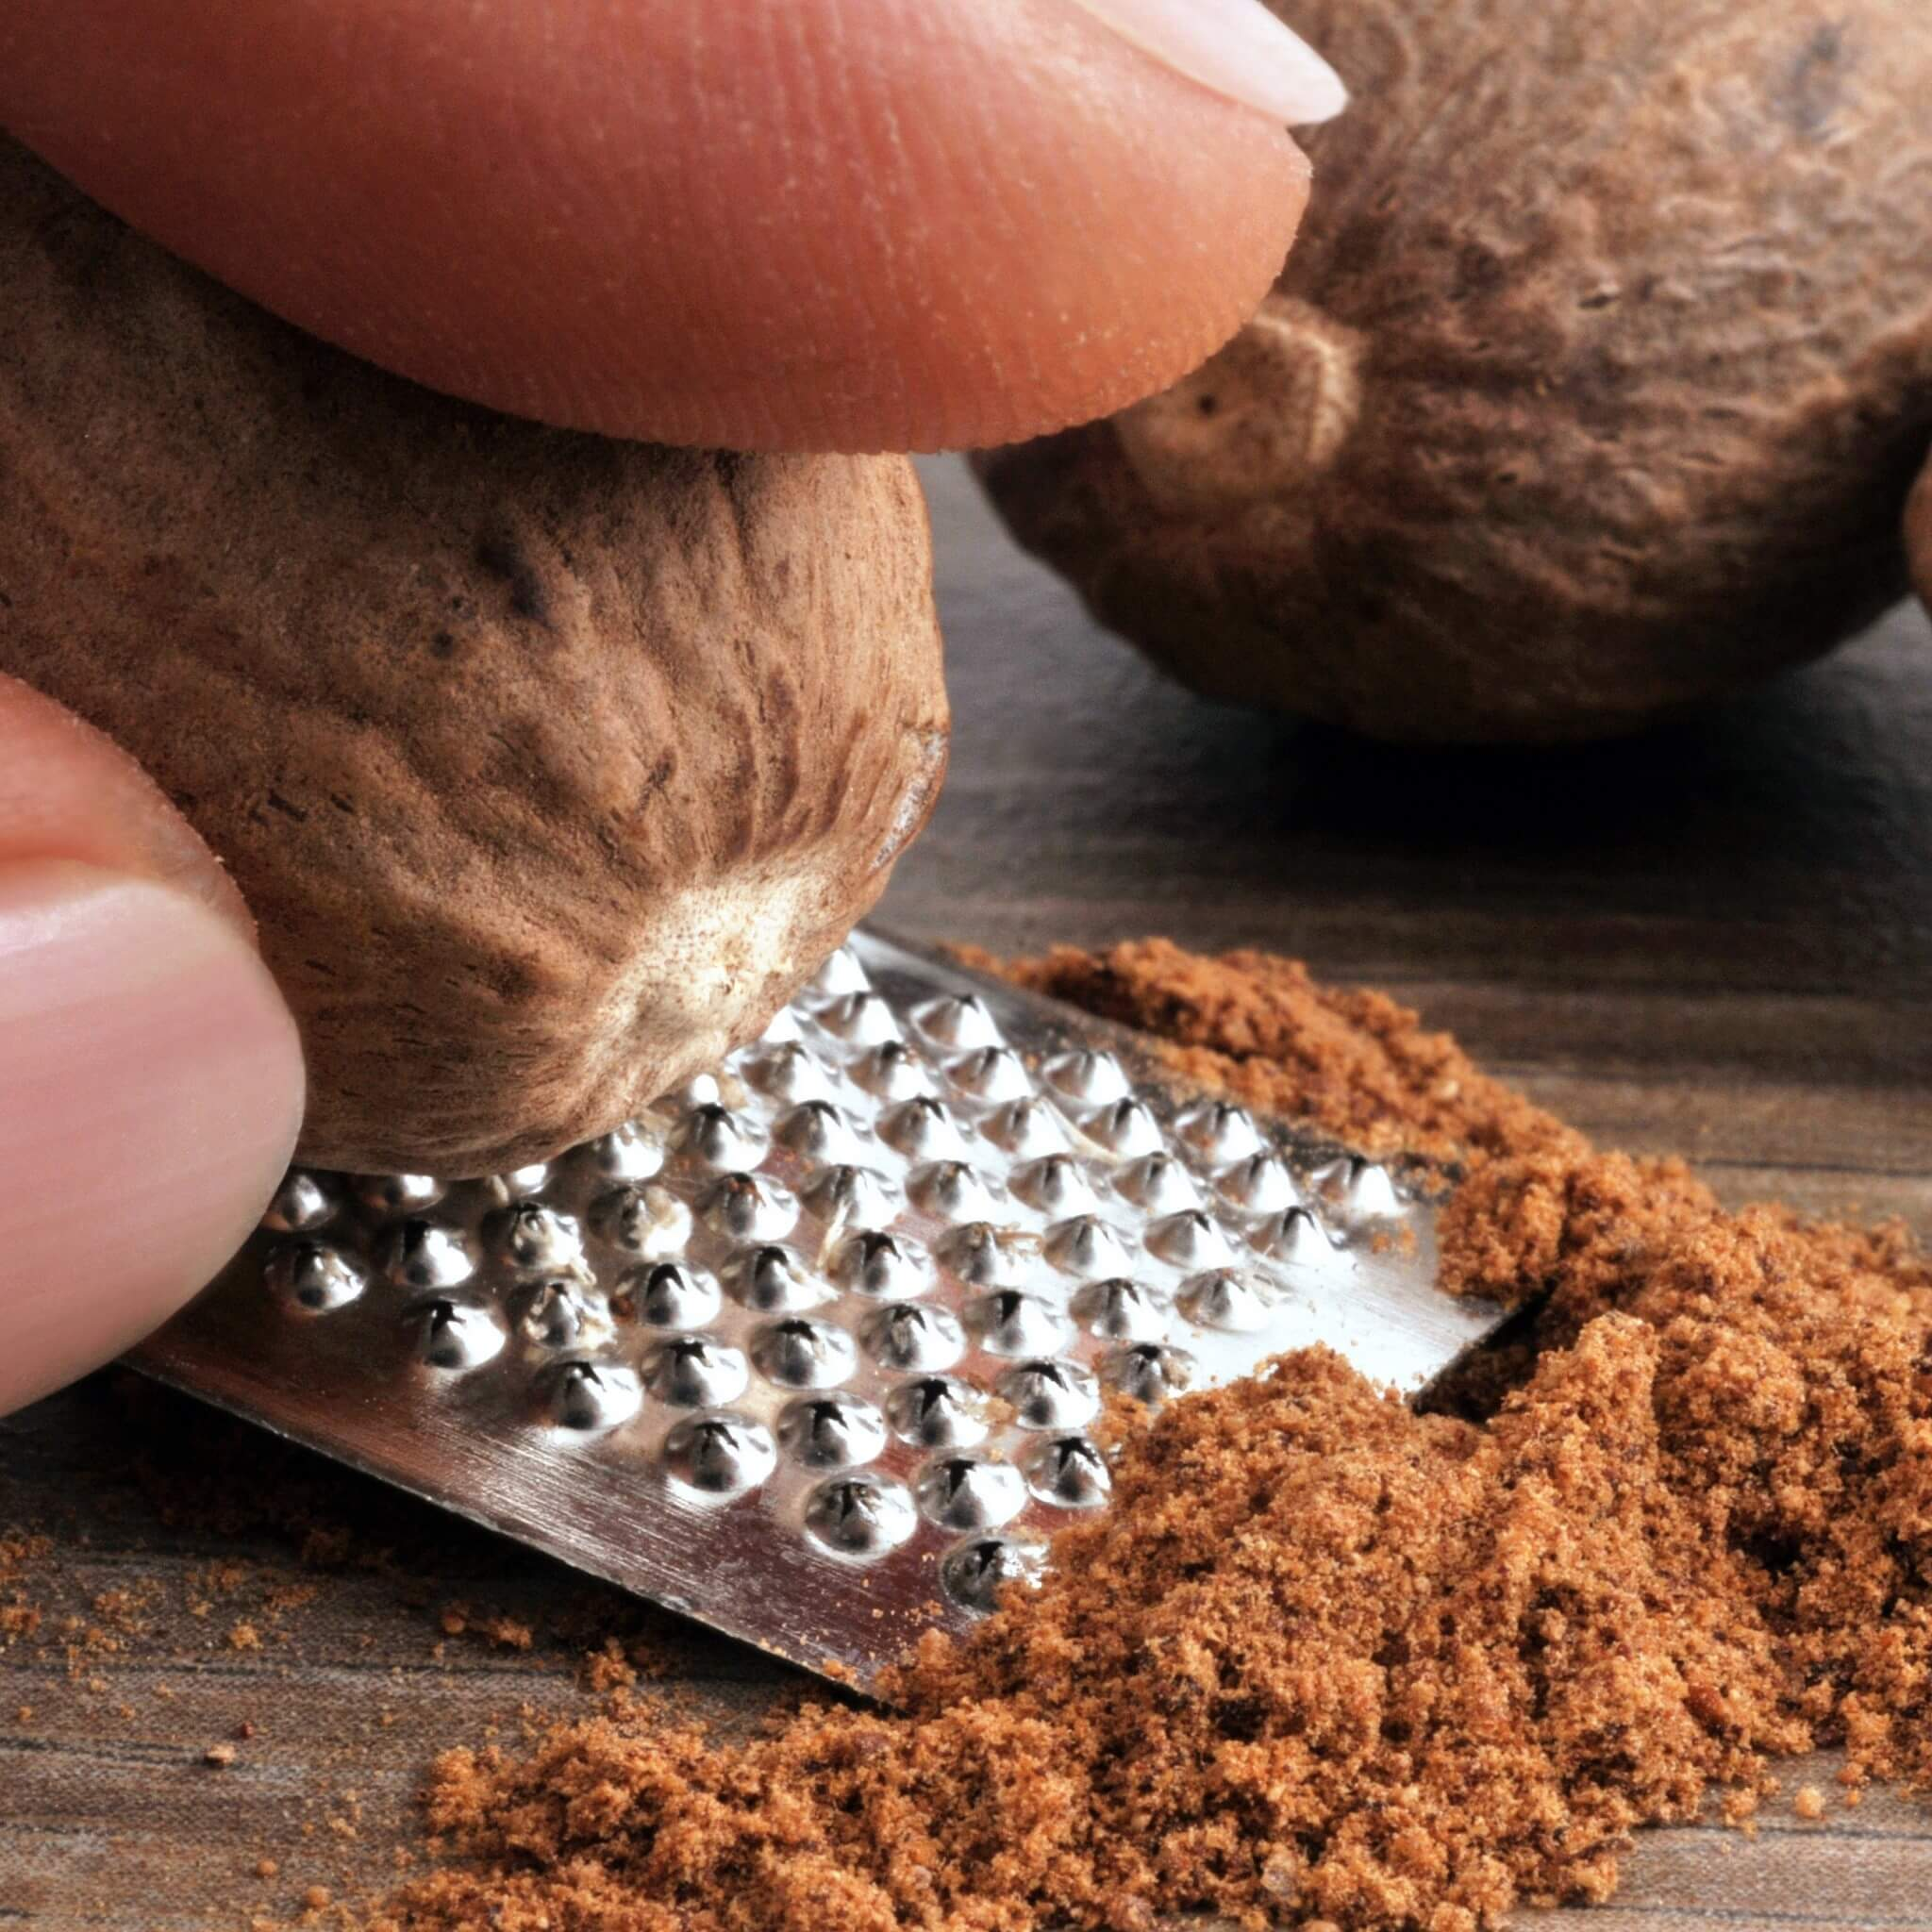 Grating a Cinnamon Tree Organics whole nutmeg